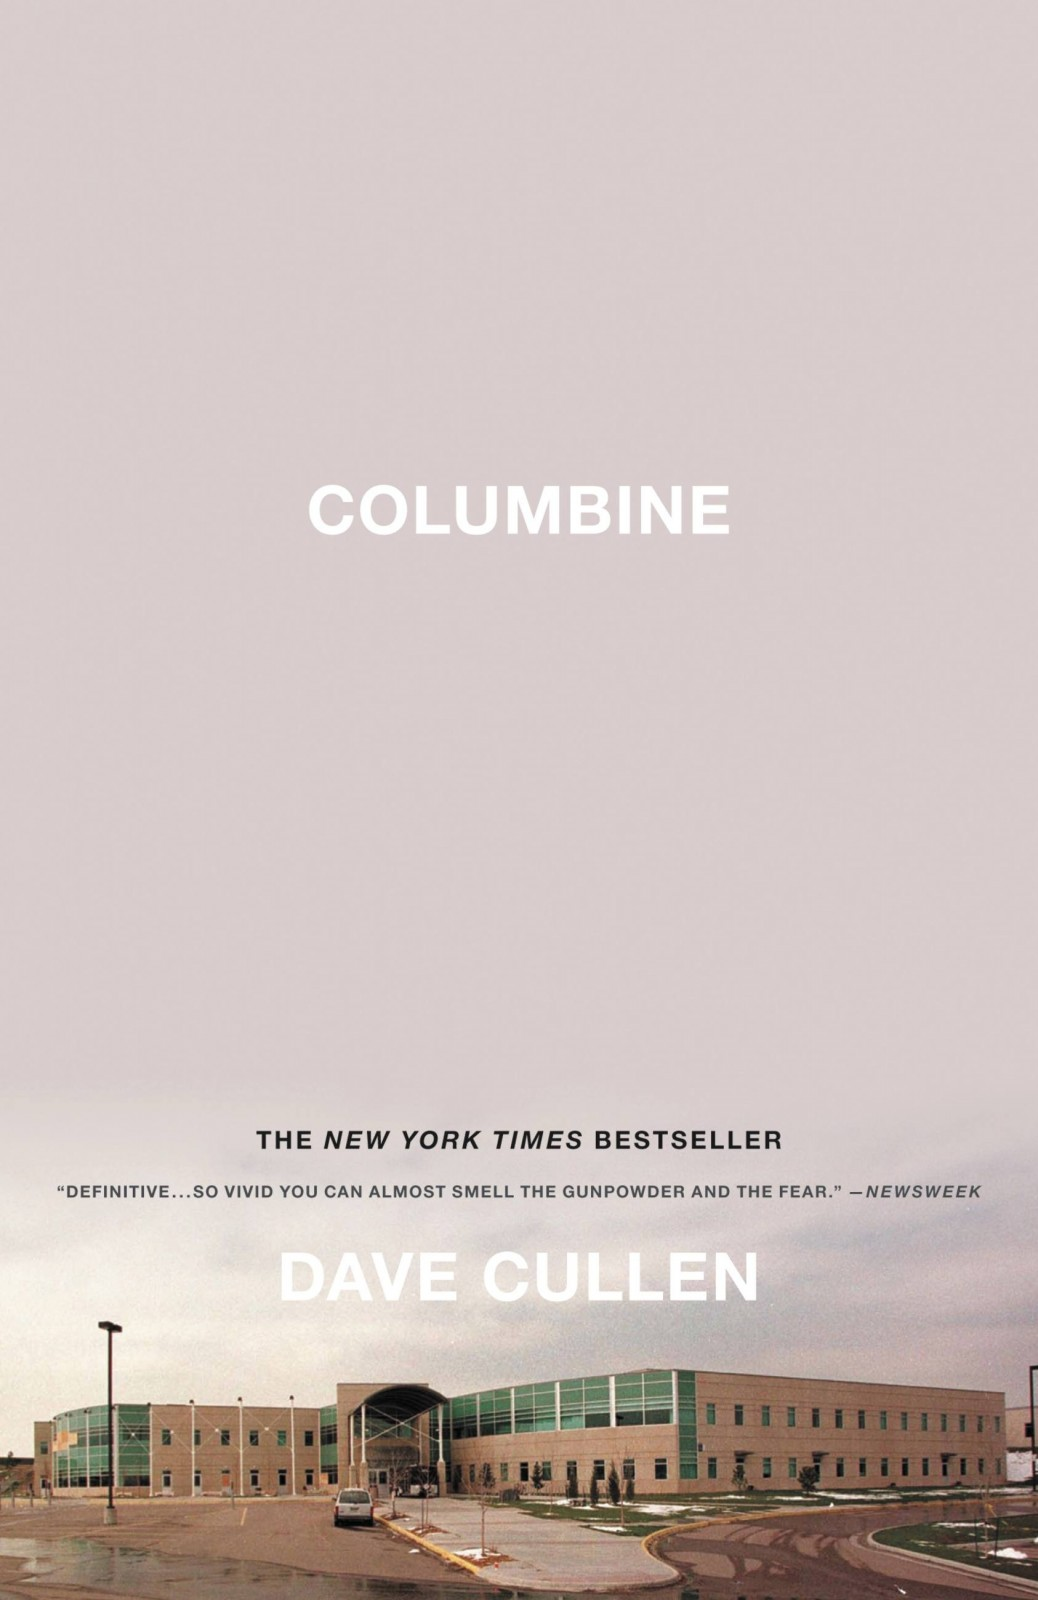 Book Review Dave Cullen Columbine 2009 Dead End Follies Hello, to all other members out there in the kip kinkel community! book review dave cullen columbine